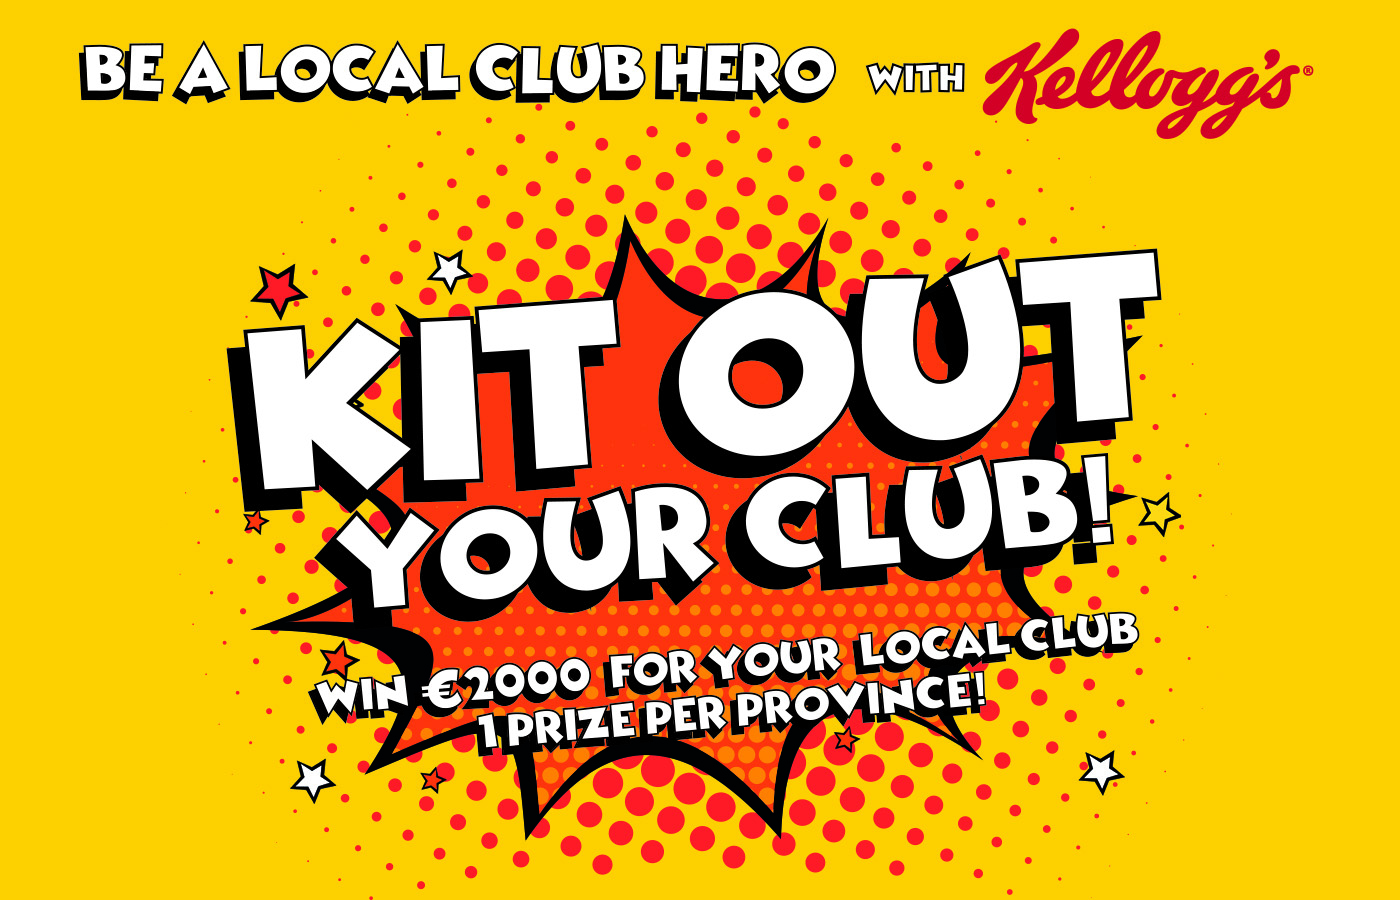 BE A LOCAL HERO AND KIT OUT YOUR CLUB WITH KELLOGG'S!